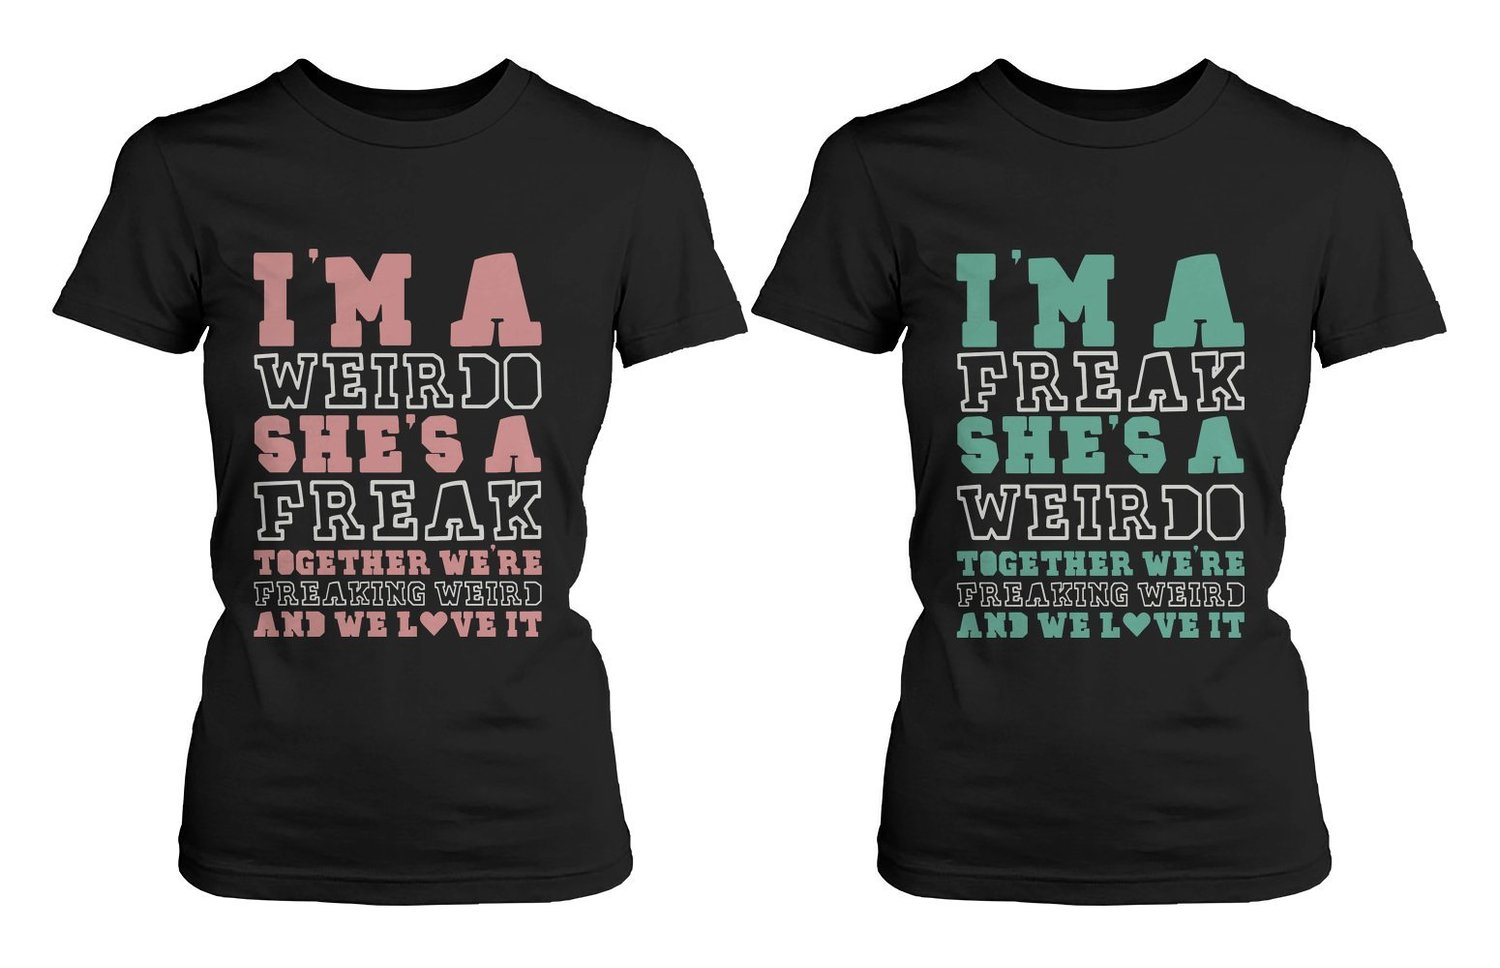 Cute best friend t shirts freak and weirdo This guy has an awesome girlfriend shirt